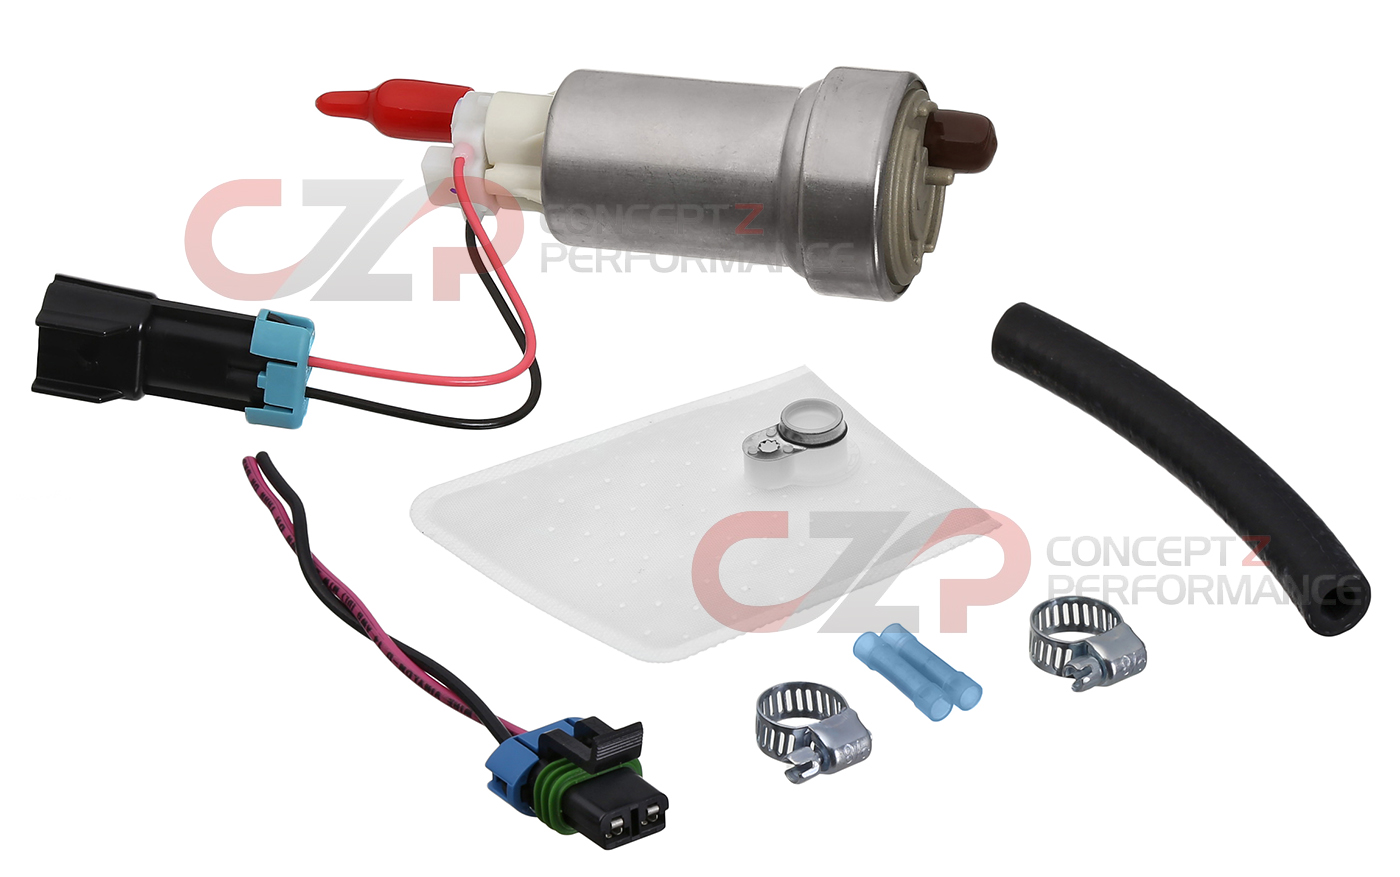 Walbro 485 Universal High Pressure Fuel Pump - Ethanol E85  450 LPH F90000267 w/ Install Kit - IN STOCK!!!